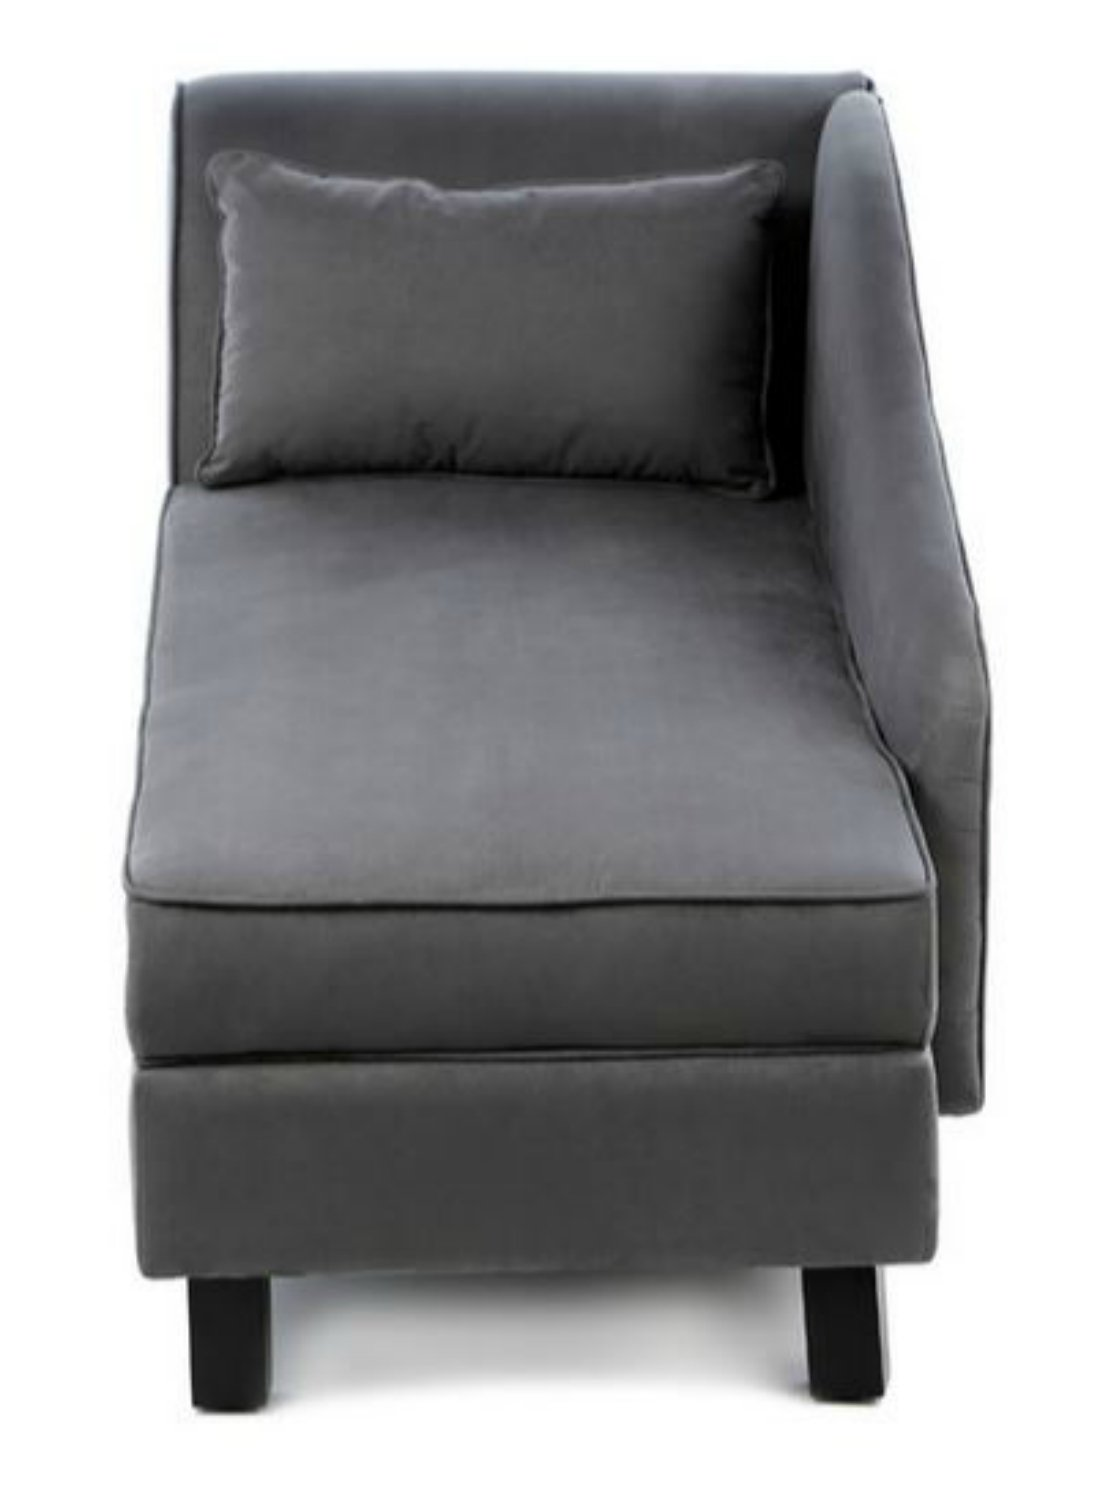 office chaise lounge chair. Amazon.com: Storage Chaise Lounge Chair -This Microfiber Upholstered Lounger Is Perfect For Your Home Or Office - Put This Accent Sofa Furniture In The L